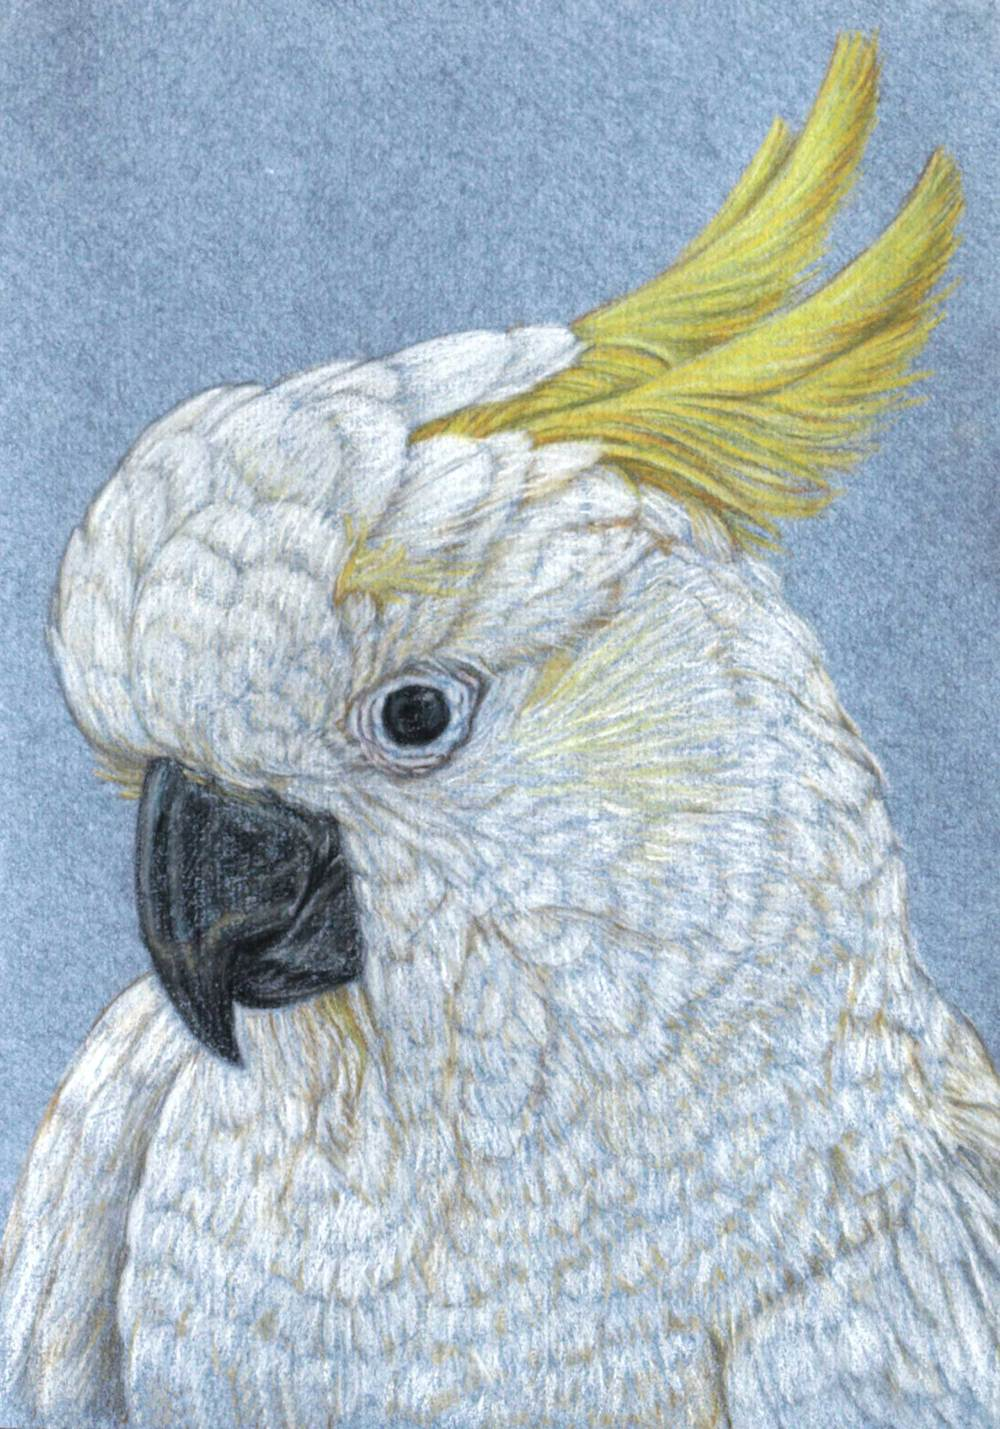 sulphur-crested-cockatoo-2-drawing-rachel-newling.jpg